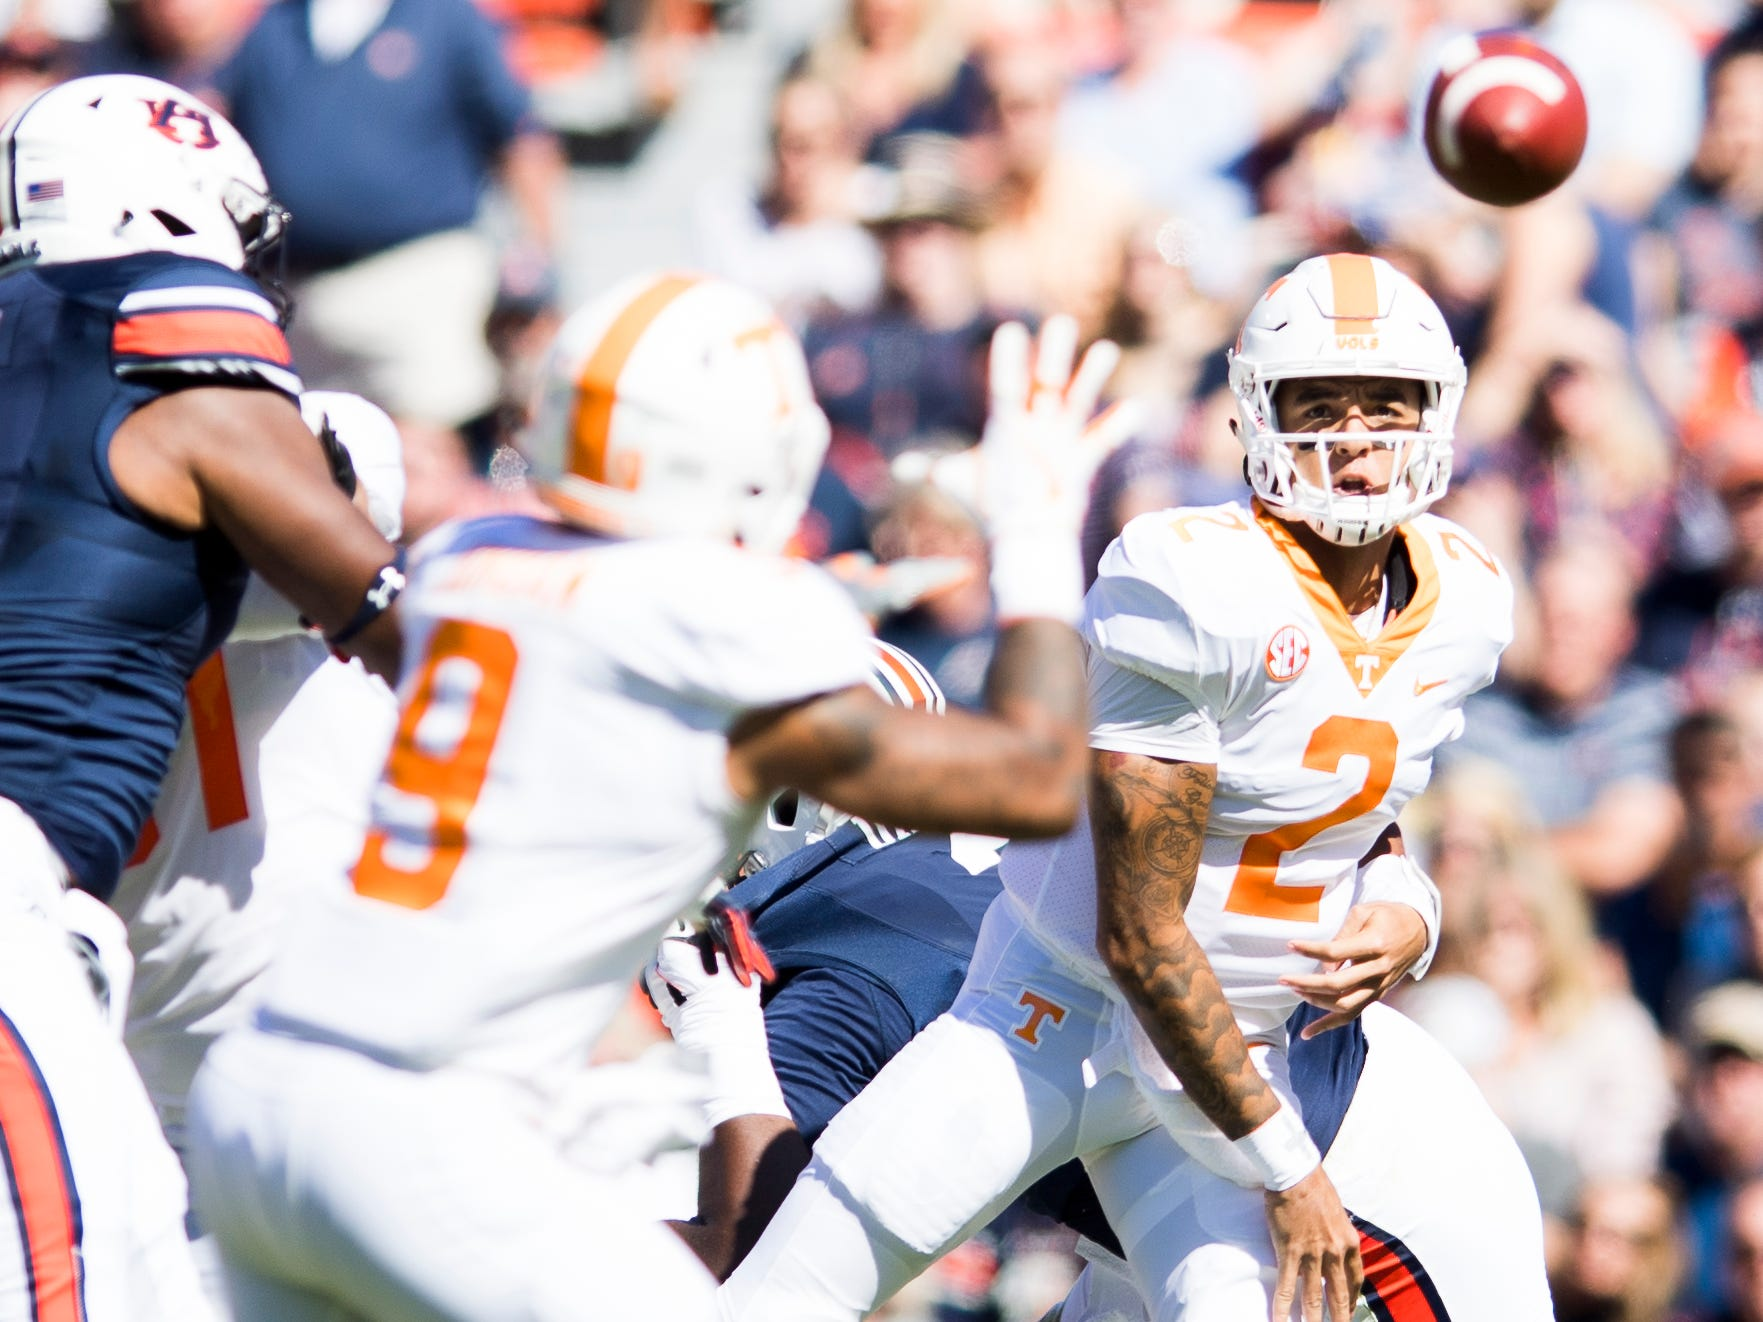 Tennessee quarterback Jarrett Guarantano (2) throws a pass to Tennessee running back Tim Jordan (9) during a game between Tennessee and Auburn at Jordan-Hare Stadium in Auburn, Alabama on Saturday, October 13, 2018.